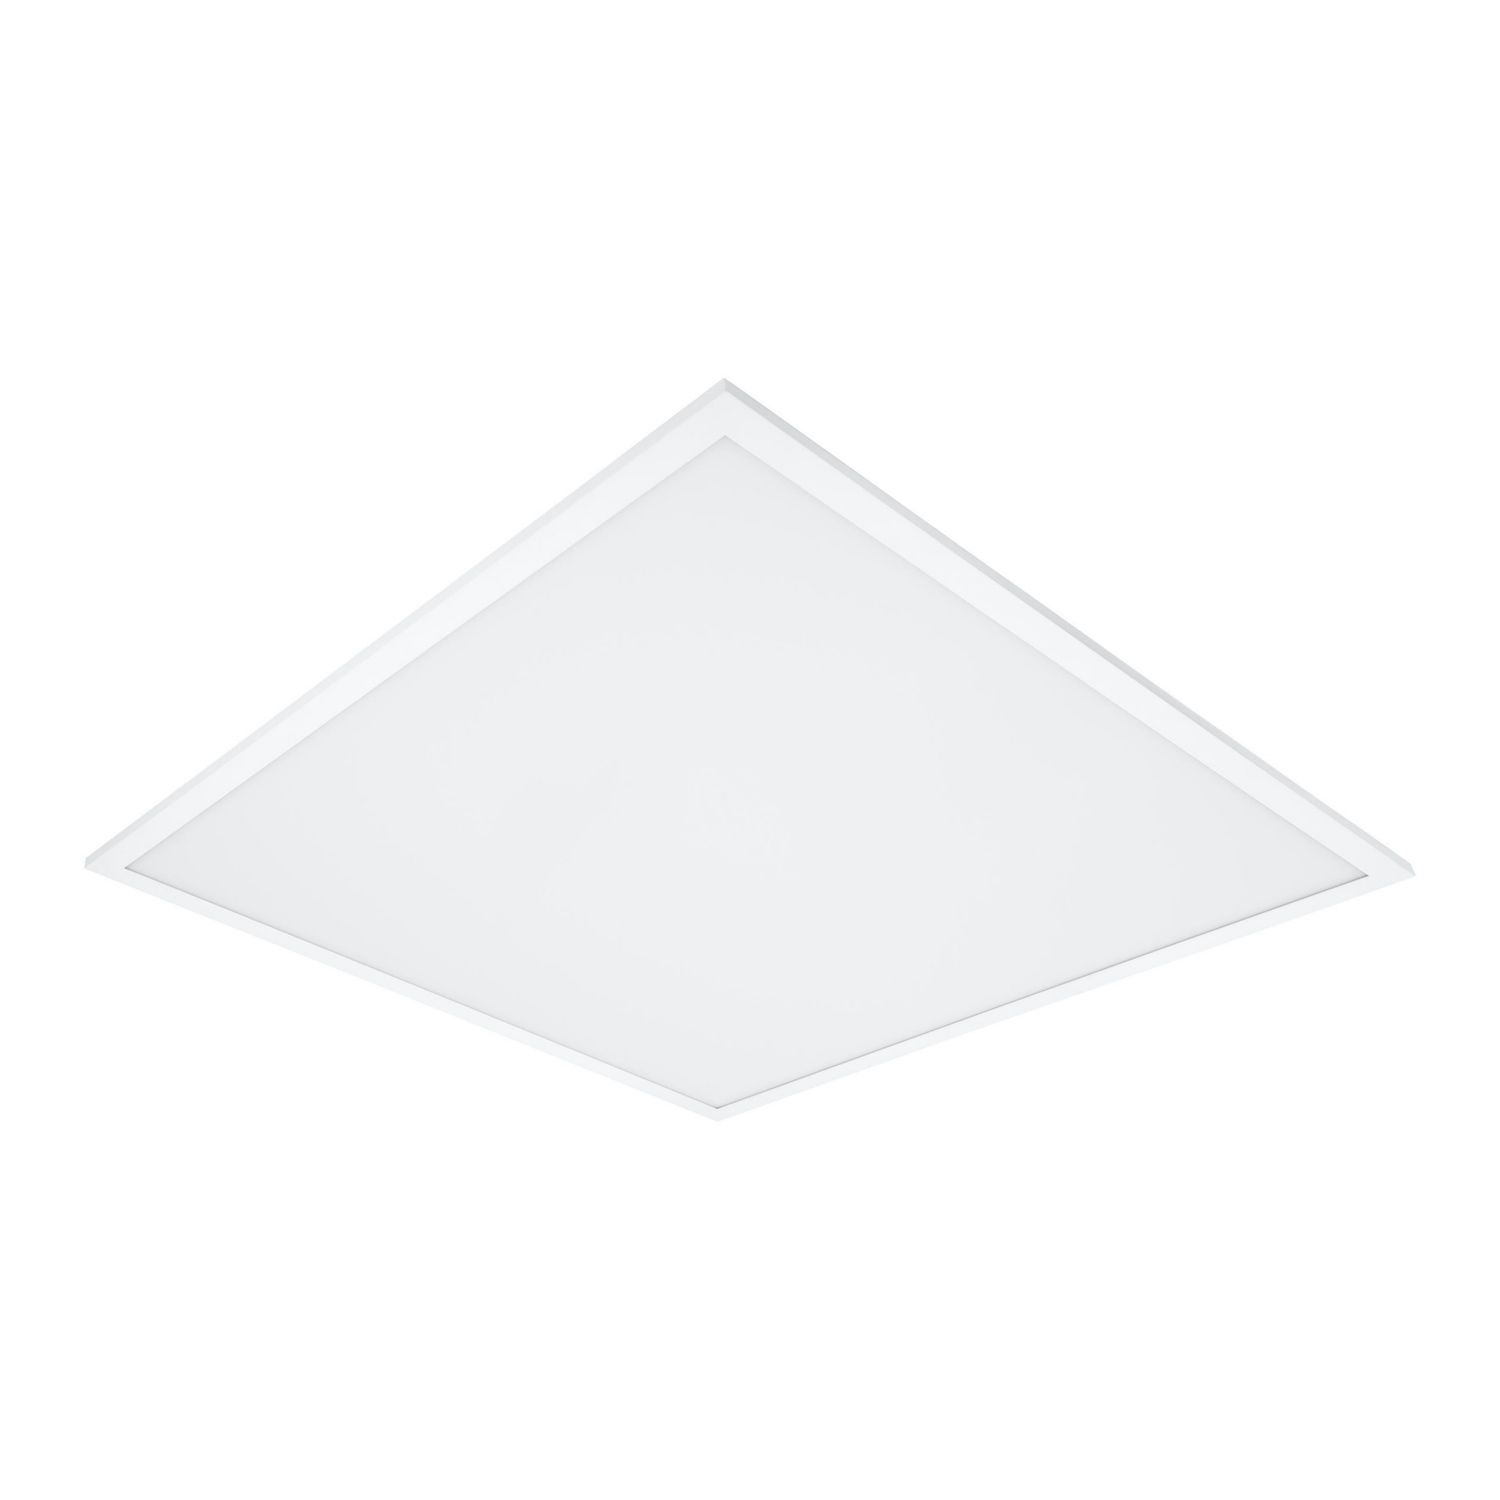 Ledvance LED Panel Performance 60x60cm 4000K 33W UGR <19 | Dali Dimmable - Replacer for 4x18W